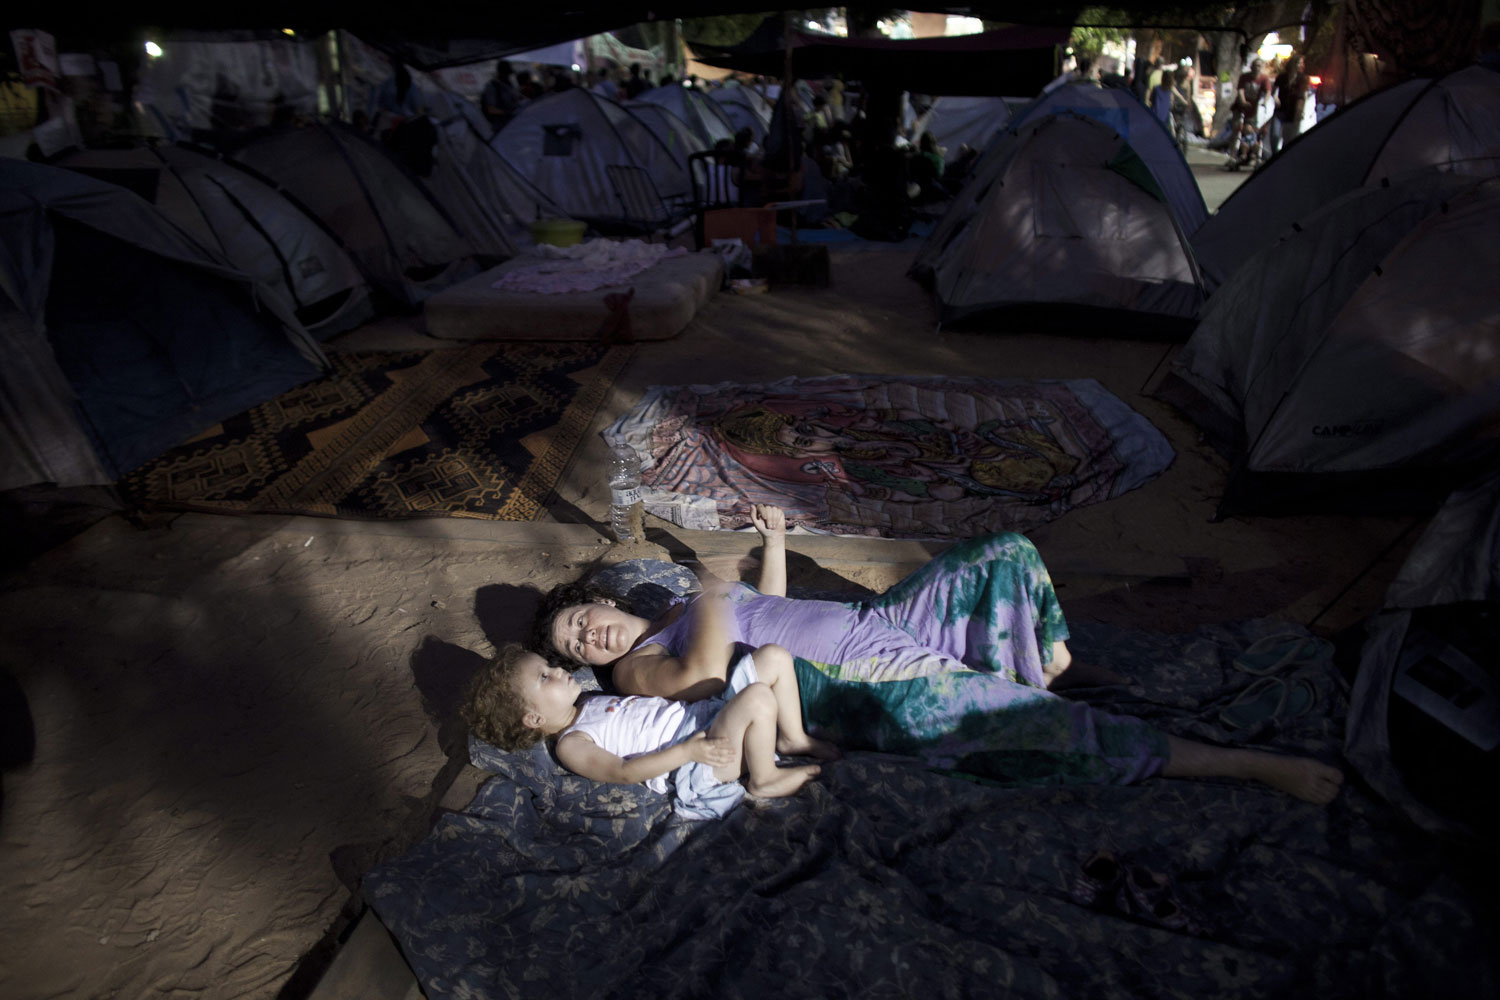 July 30, 2011. A young mother plays with her son in the tent city in Tel Aviv prior to a protest march against rising housing prices and social inequalities. Protests against skyrocketing housing prices and cost of living expenses drew an estimated 100,000 people into the streets across Israel.